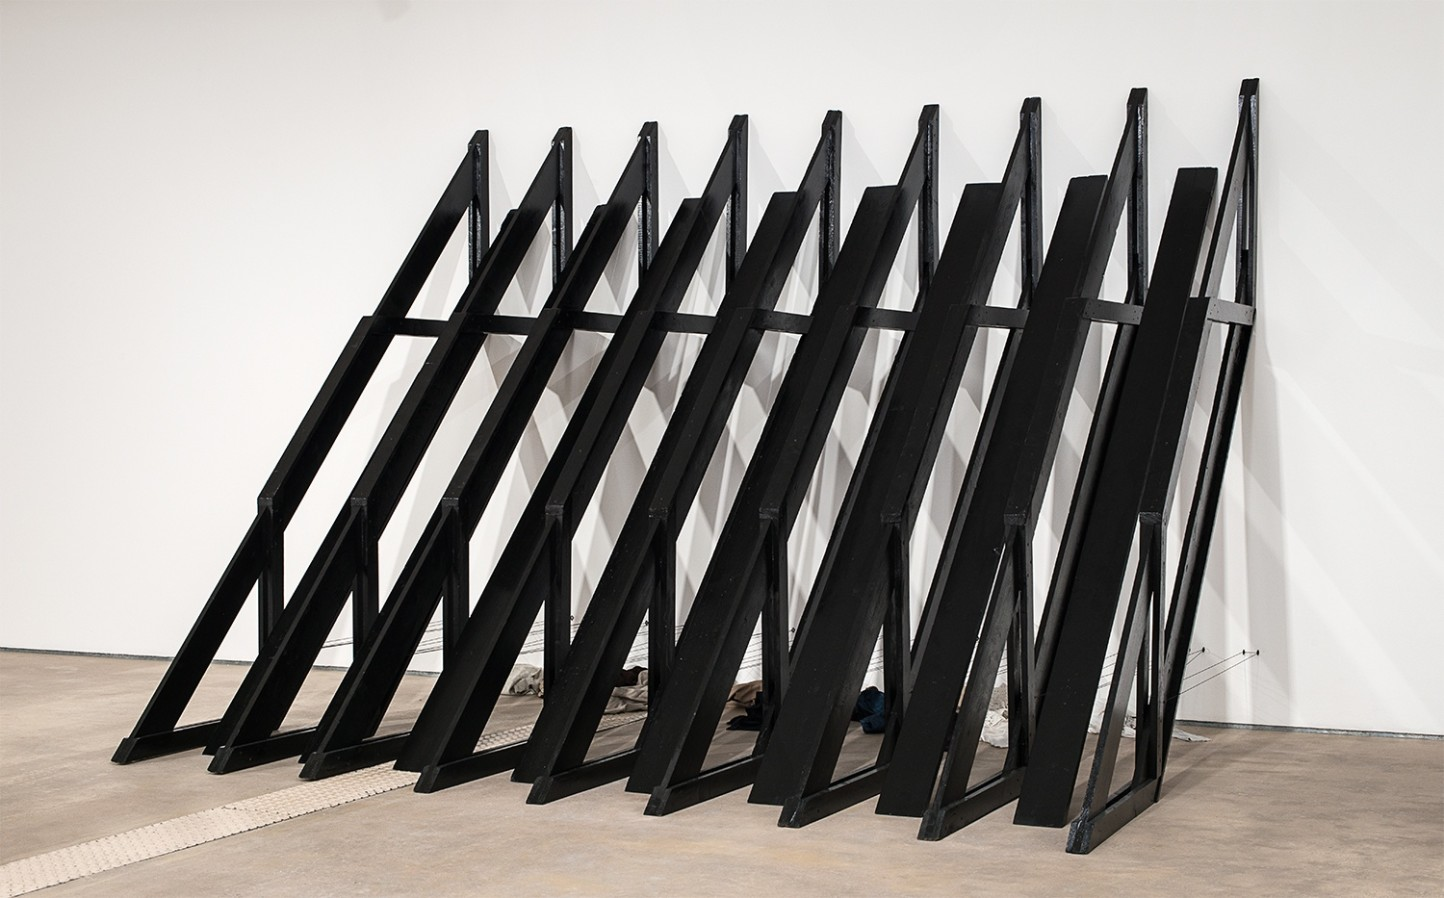 Stuart Brisley, Against the Wall, 1985-6, wooden buttresses and clothes, 233.5 x 327 x 233.5 cm, 91 7/8 x 128 3/4 x 91 7/8 in